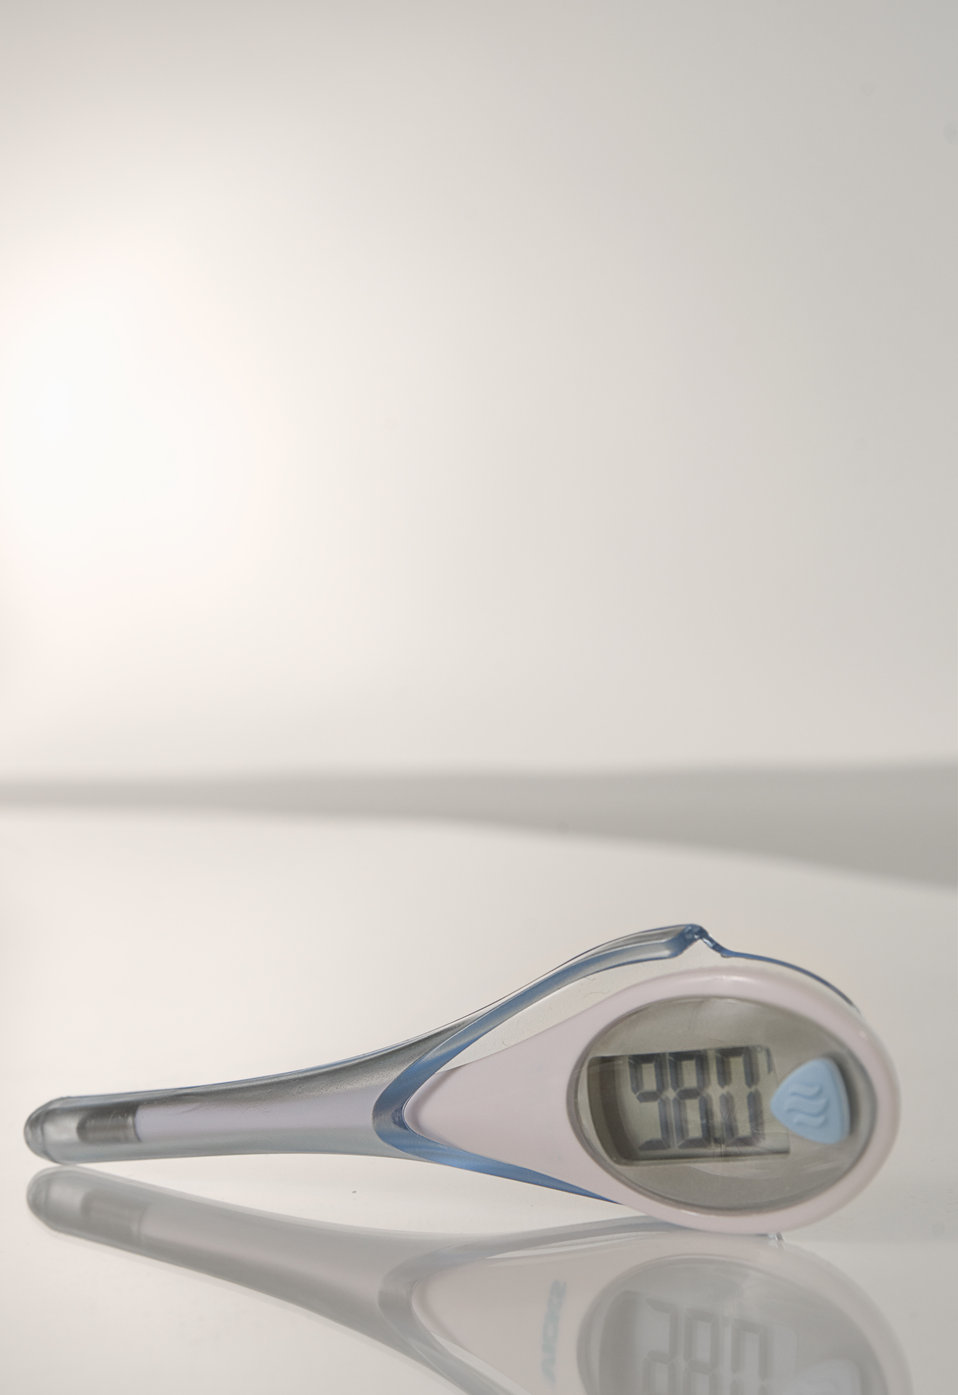 This is a high-tech, orally-administered electronic thermometer revealing its reading on its liquid crystal digital display, which in this c